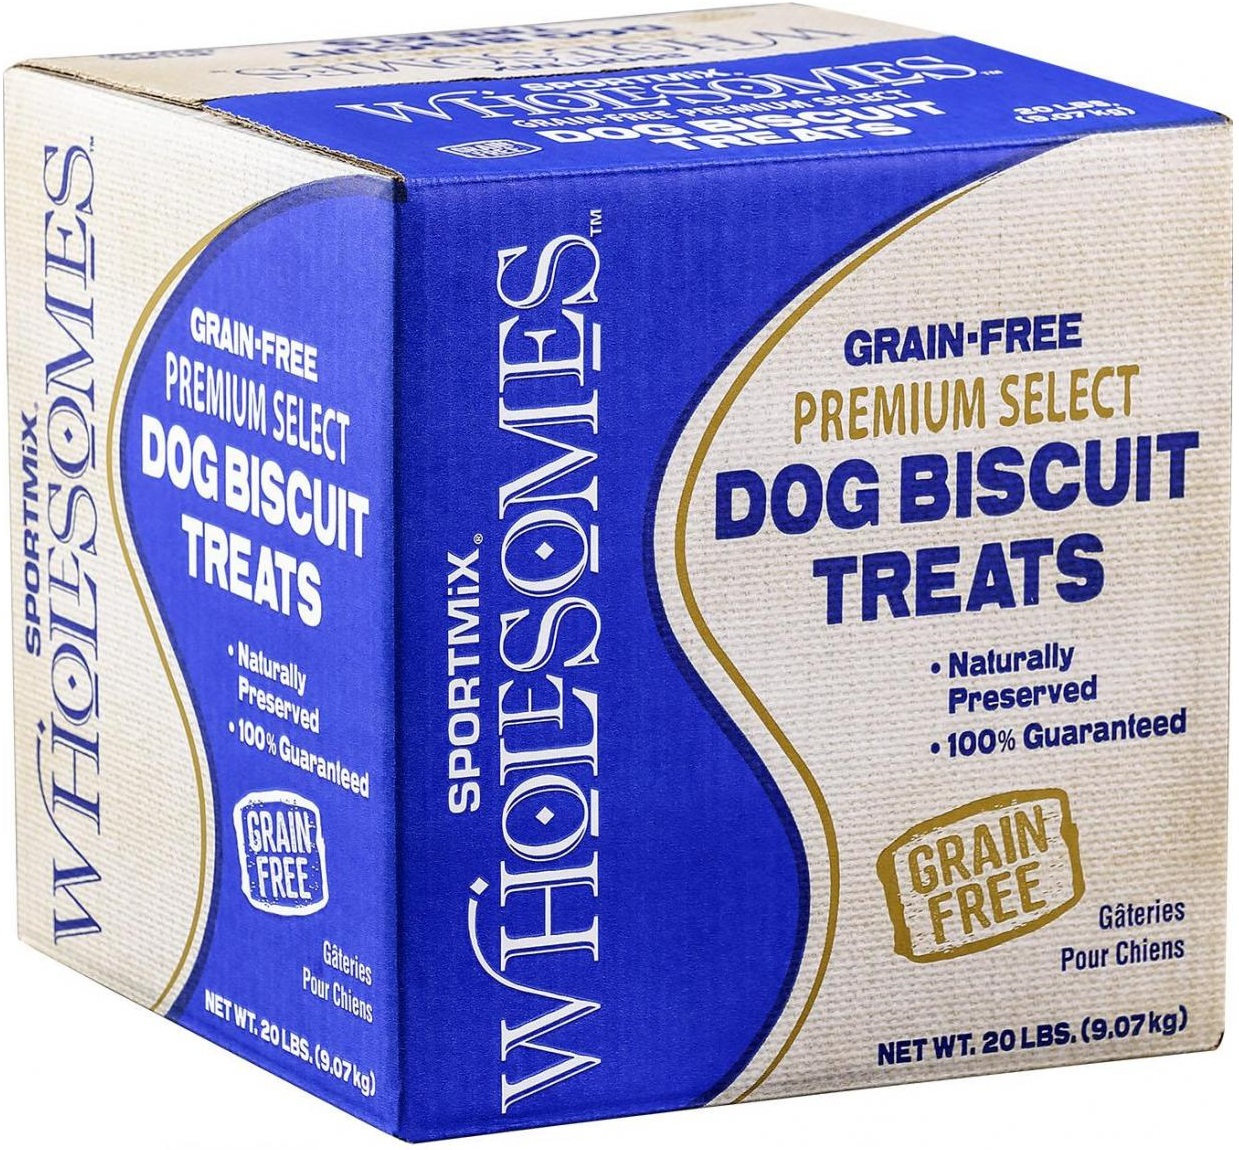 SPORTMiX Wholesomes Grain-Free Premium Basted Biscuit with Hickory Smoked Flavor Dog Treats, 20-lb